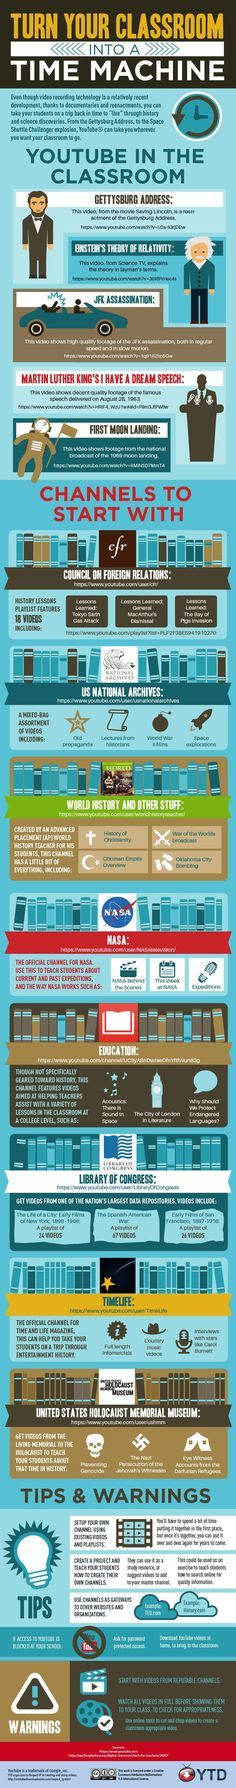 Educational infographic & data visualisation Turn Your Classroom Into A Time Machine . Infographic Description Turn Your Classroom Into A Time Machine - Social Studies Classroom, Social Studies Resources, History Classroom, History Education, History Teachers, Teaching History, Study History, Educational Videos, Educational Technology